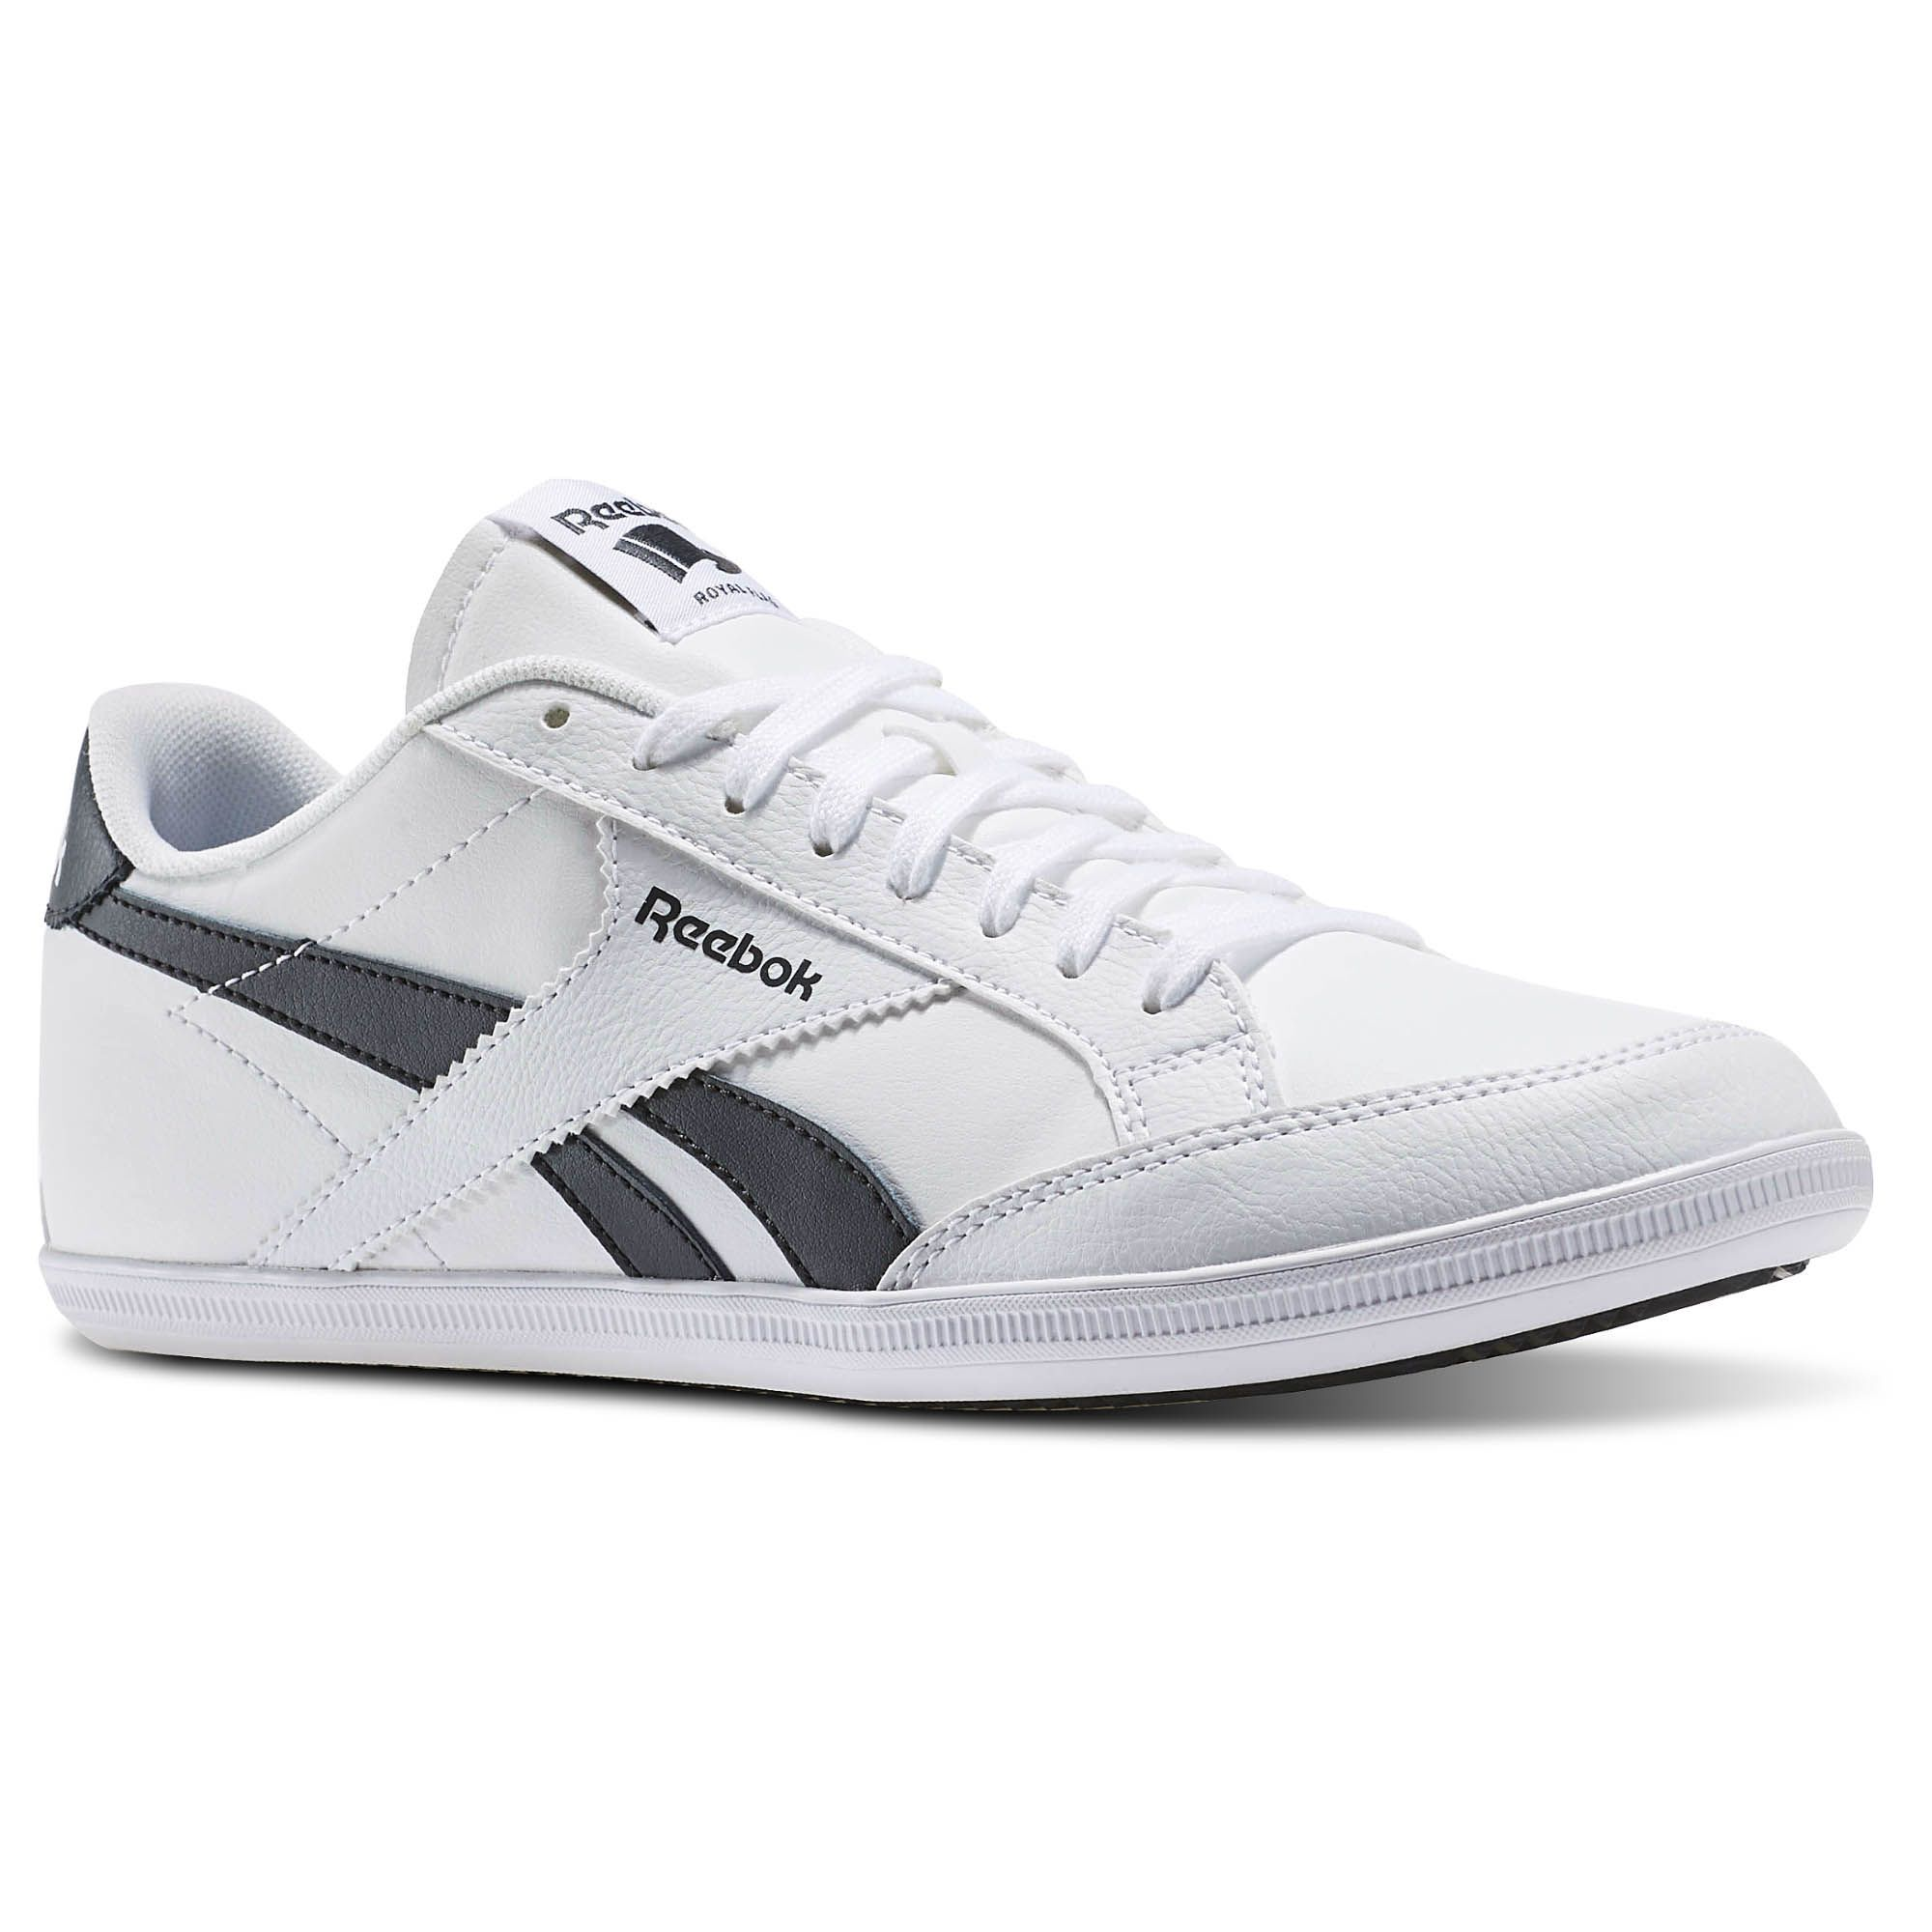 a5e4c3c6e Reebok - Royal Transport S Holy these are some nice sneakers don t you think